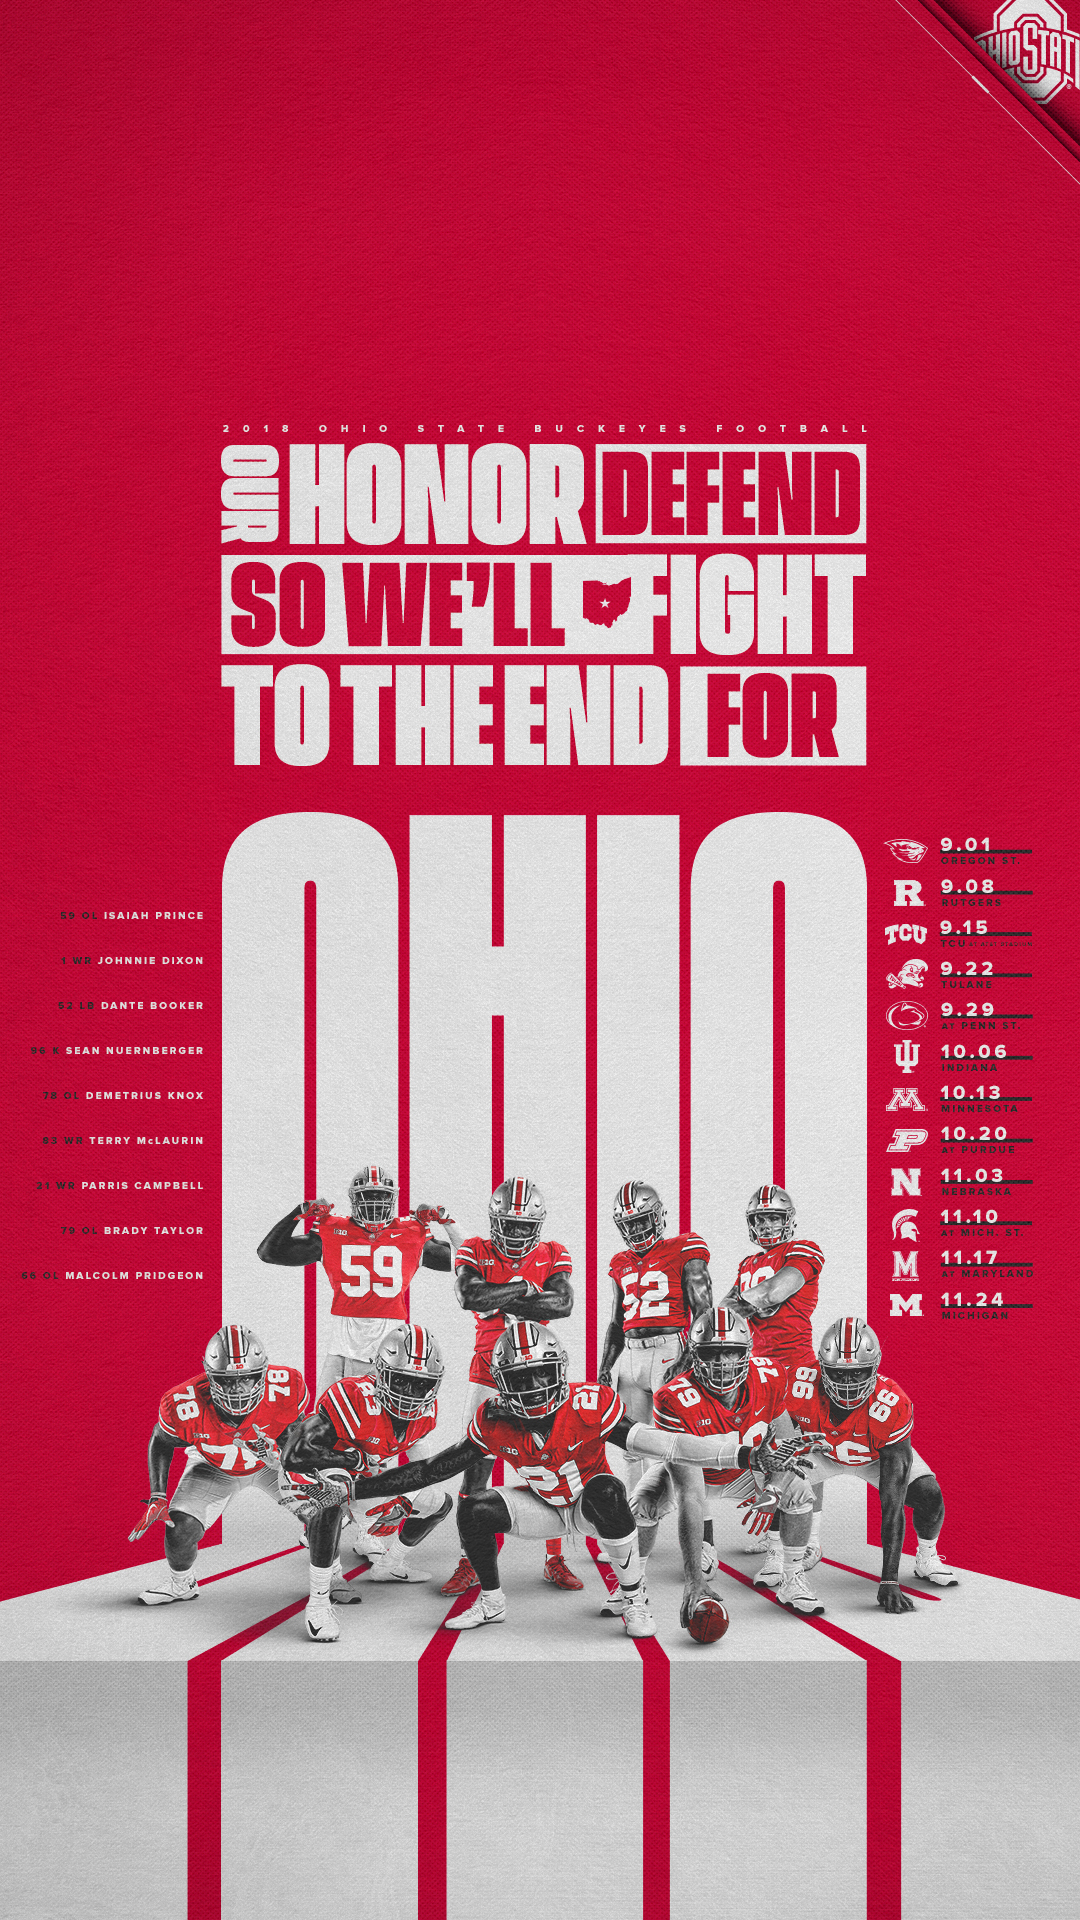 Schedule Posters – State Ohio Buckeyes